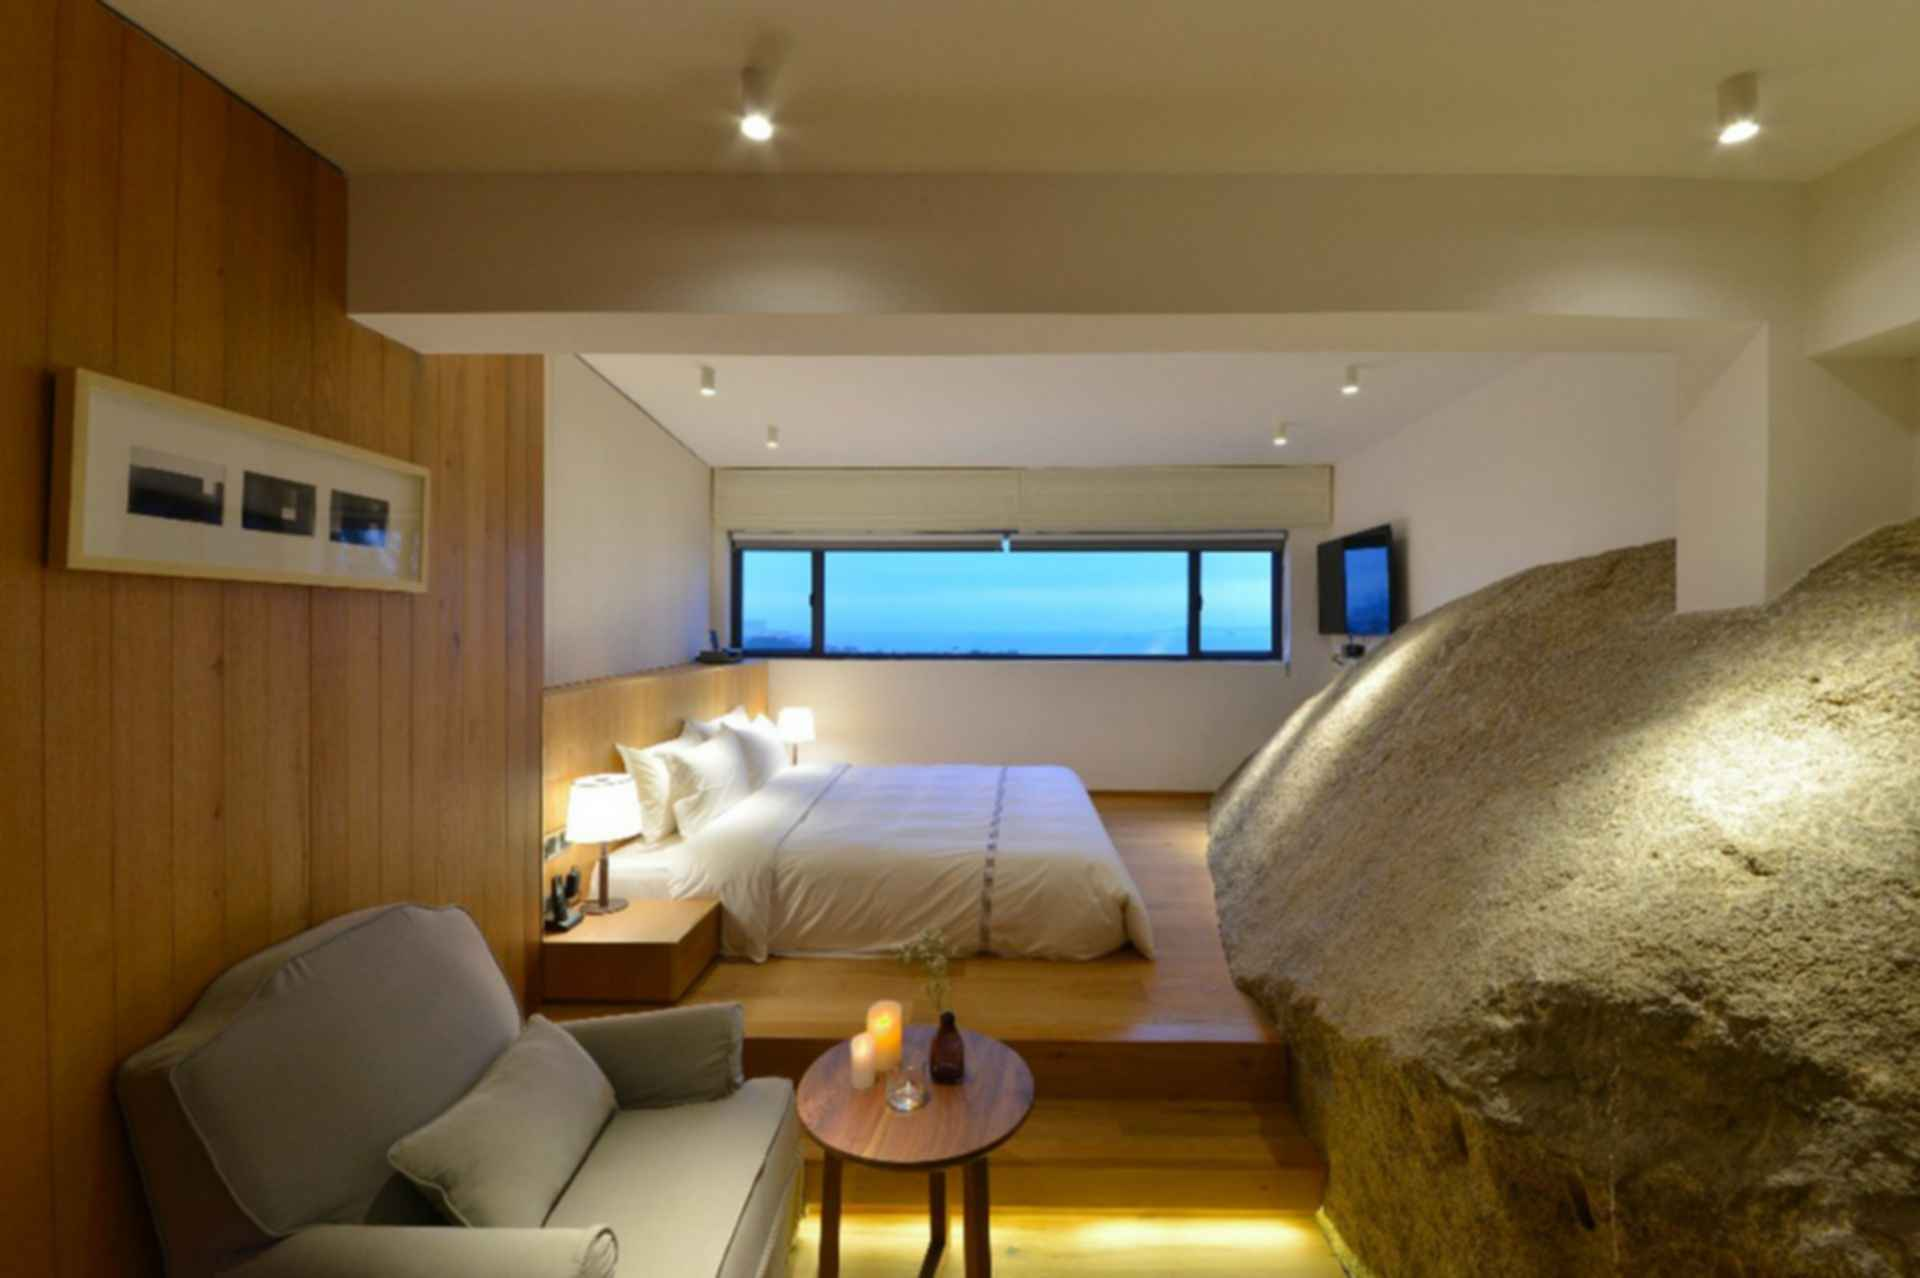 Nashare Hotel - Rooms